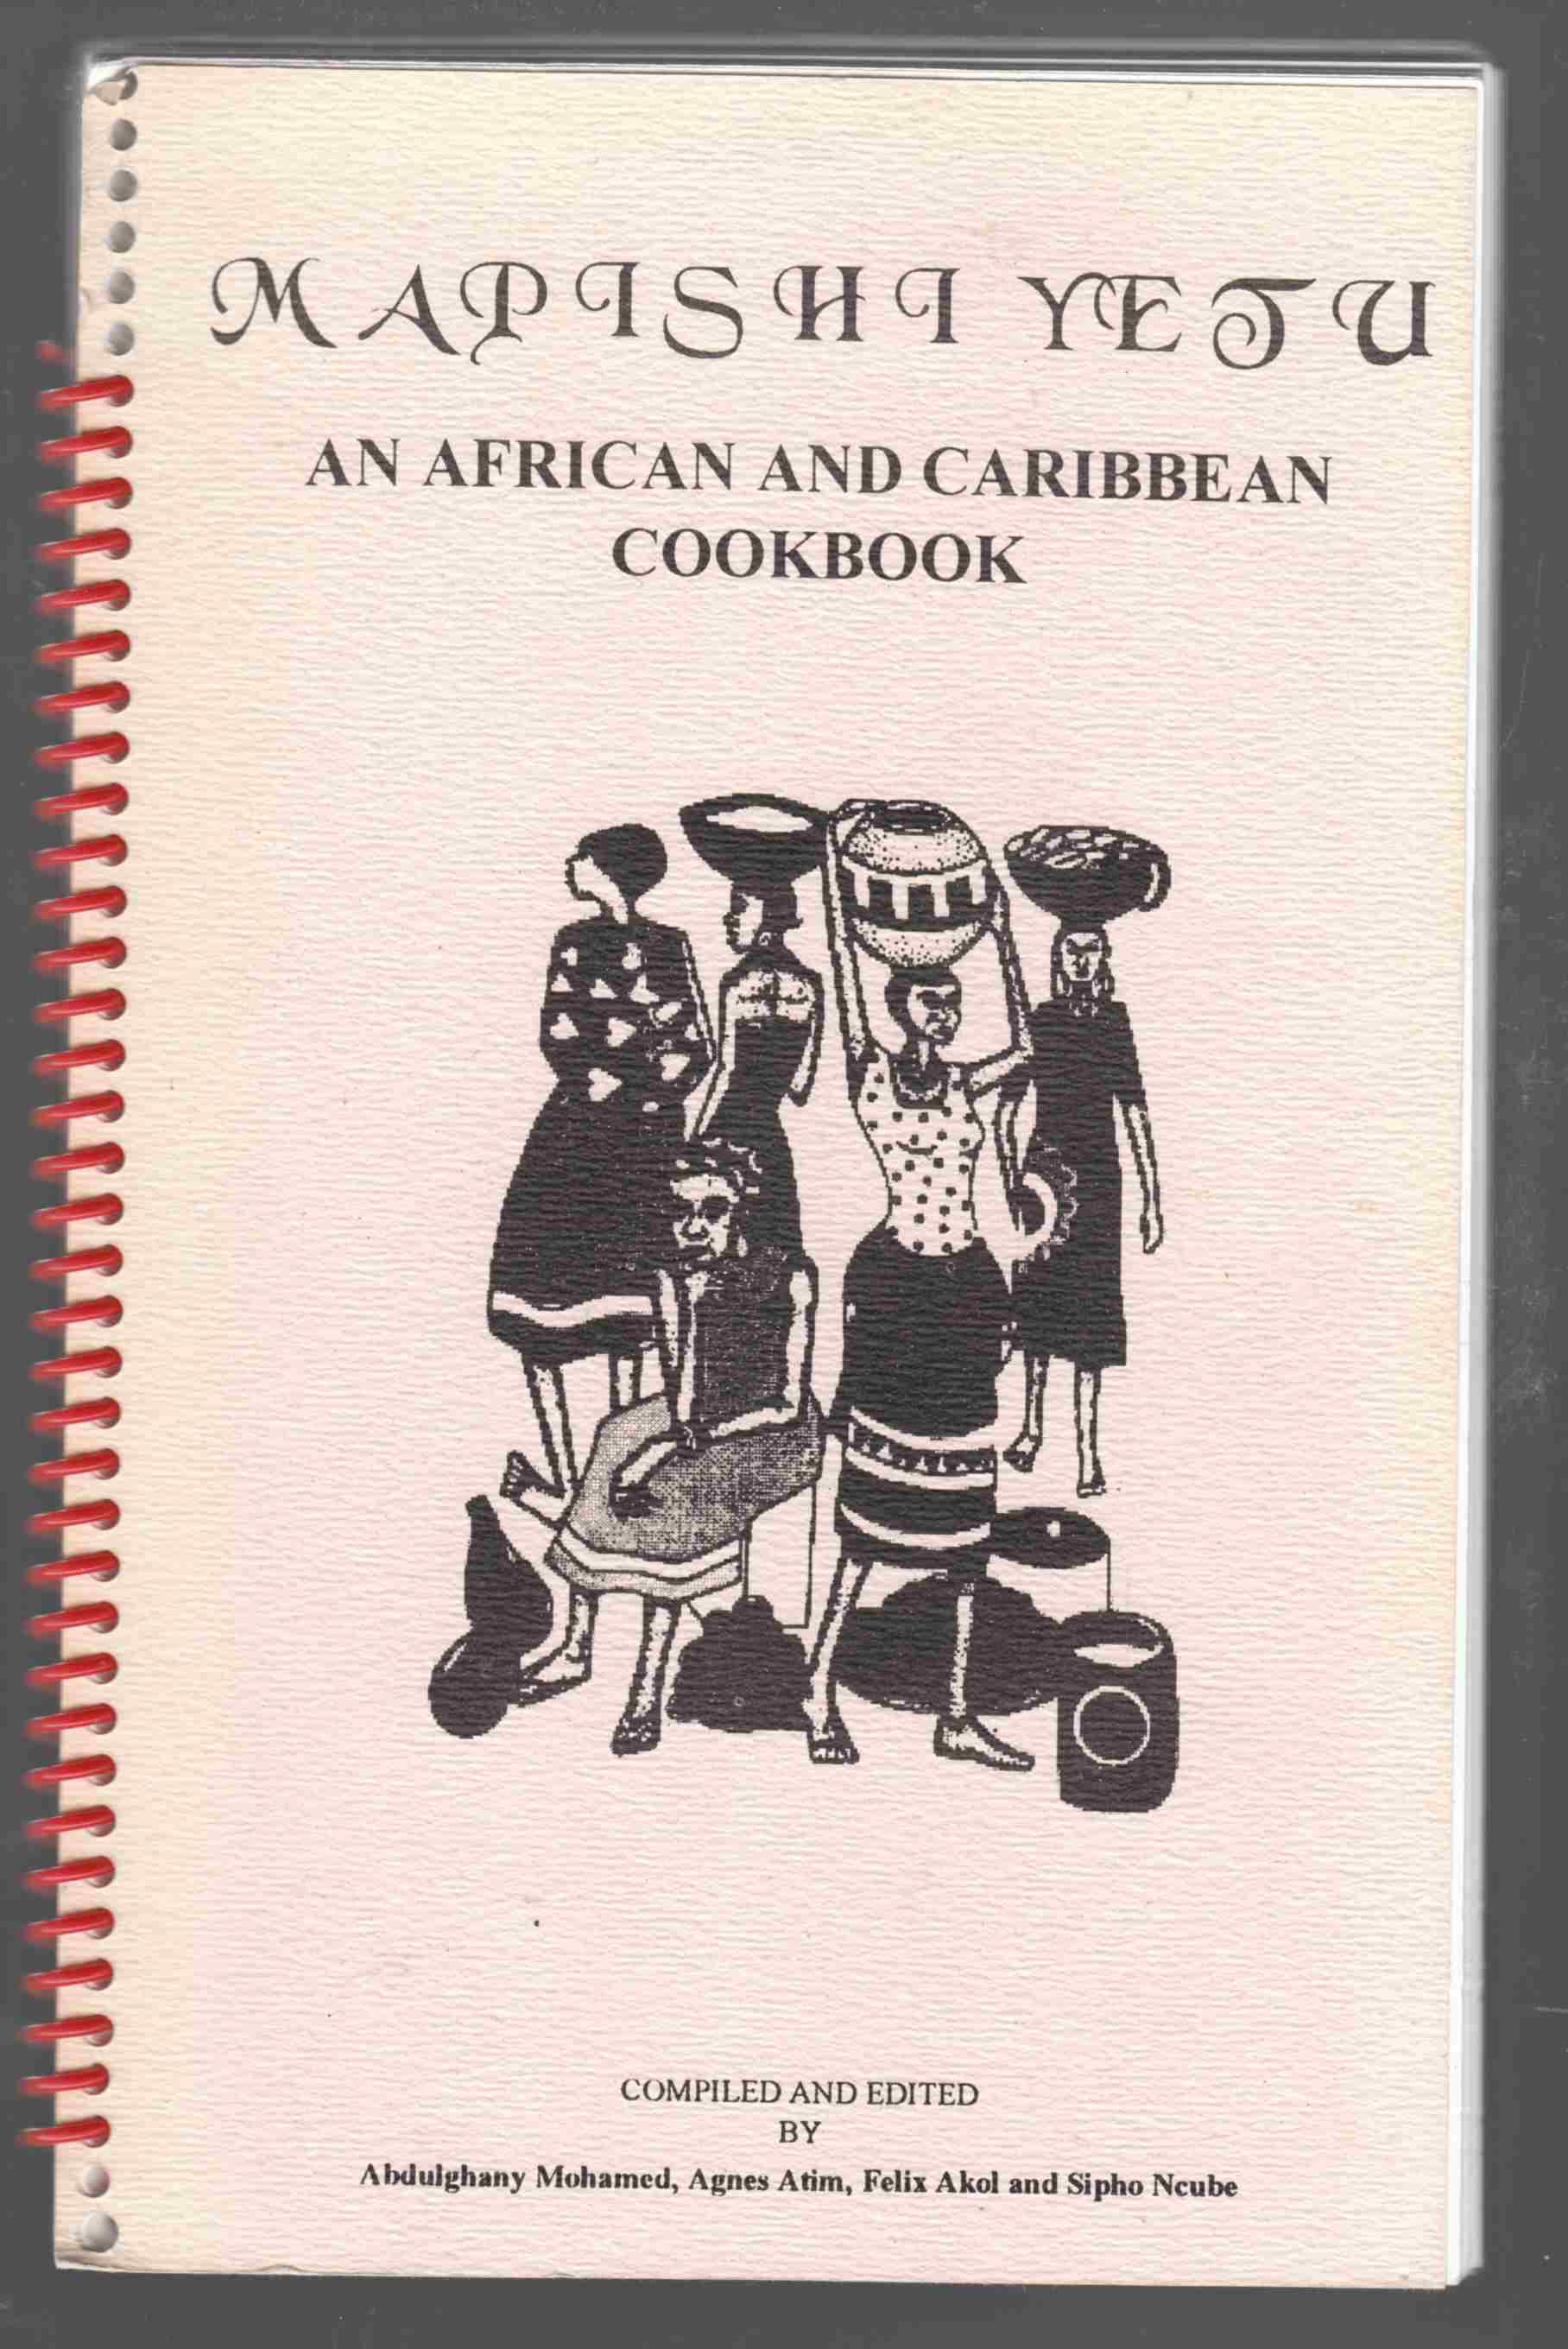 Image for Mapishi Yetu An African and Caribbean Cookbook